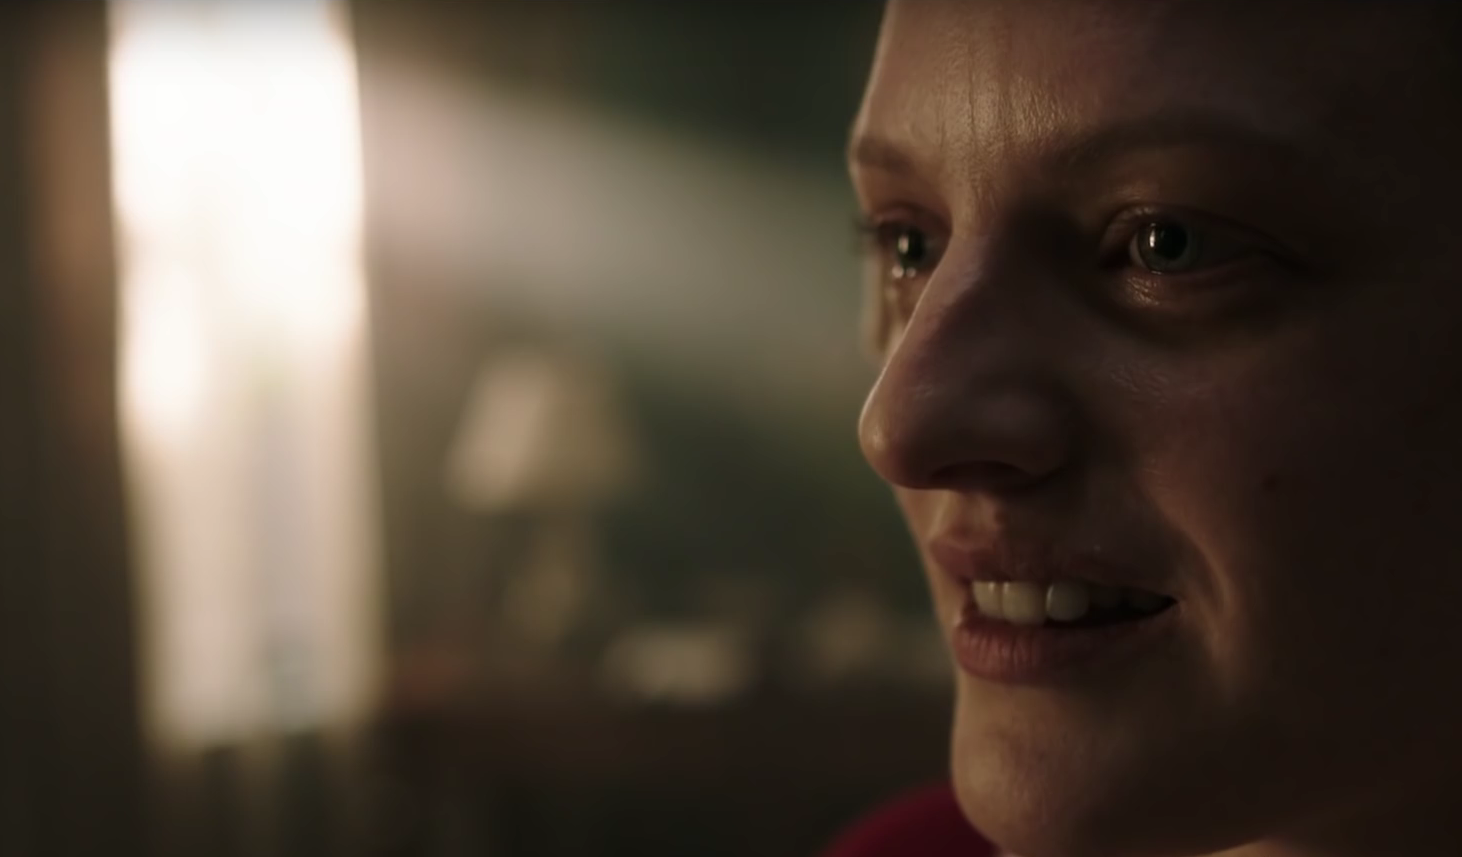 Handmaid's Tale trailer takes a trip into dystopia ...